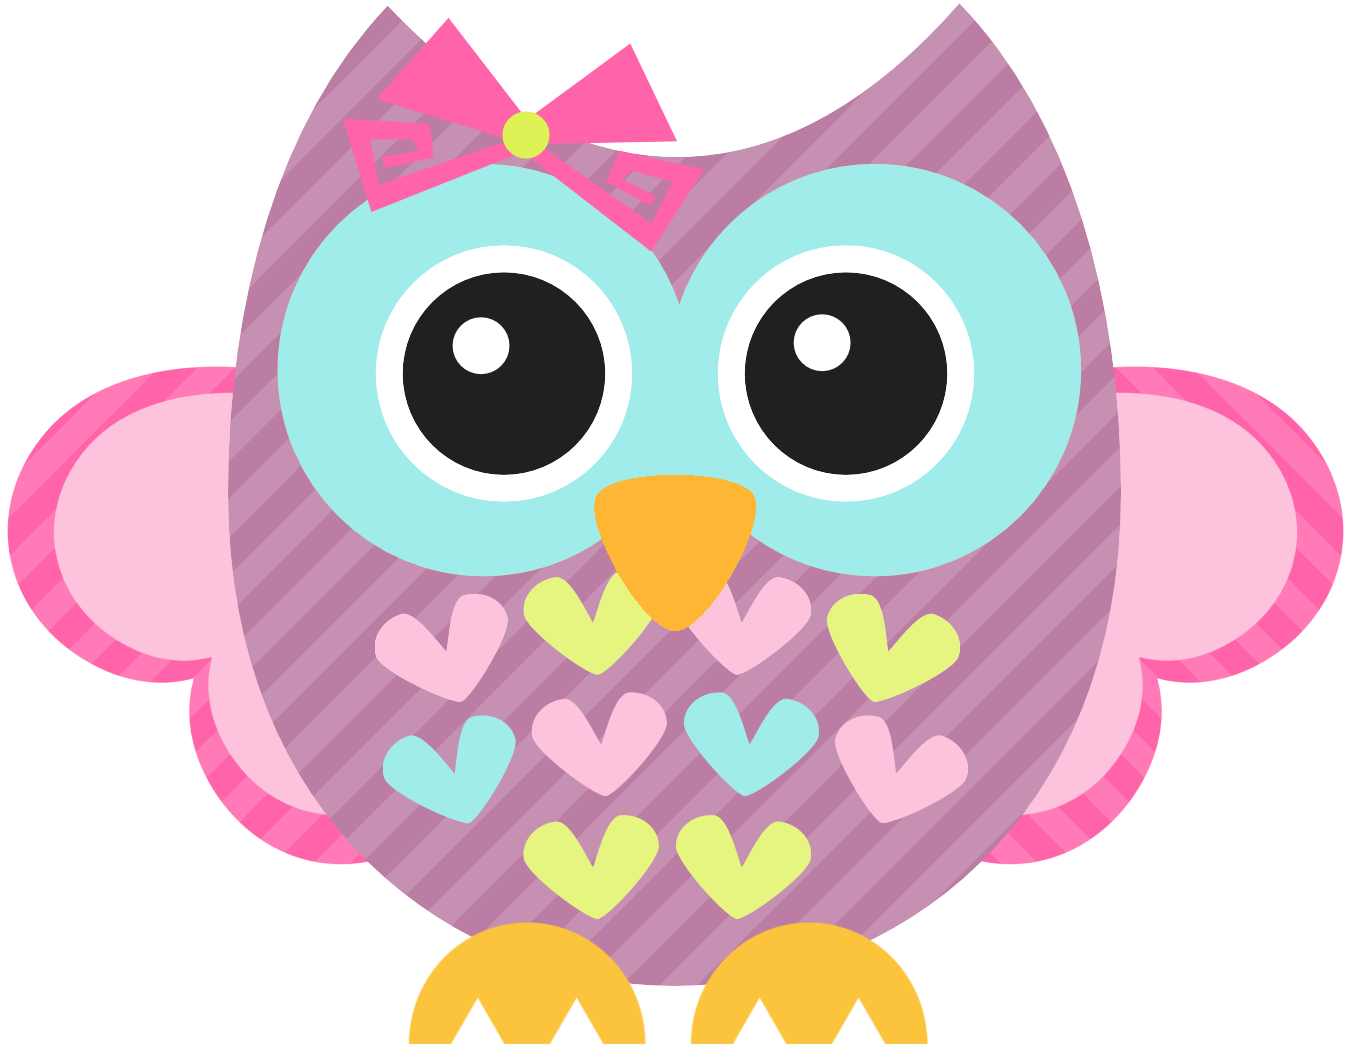 Pink owl png. Photo by daniellemoraesfalcao minus